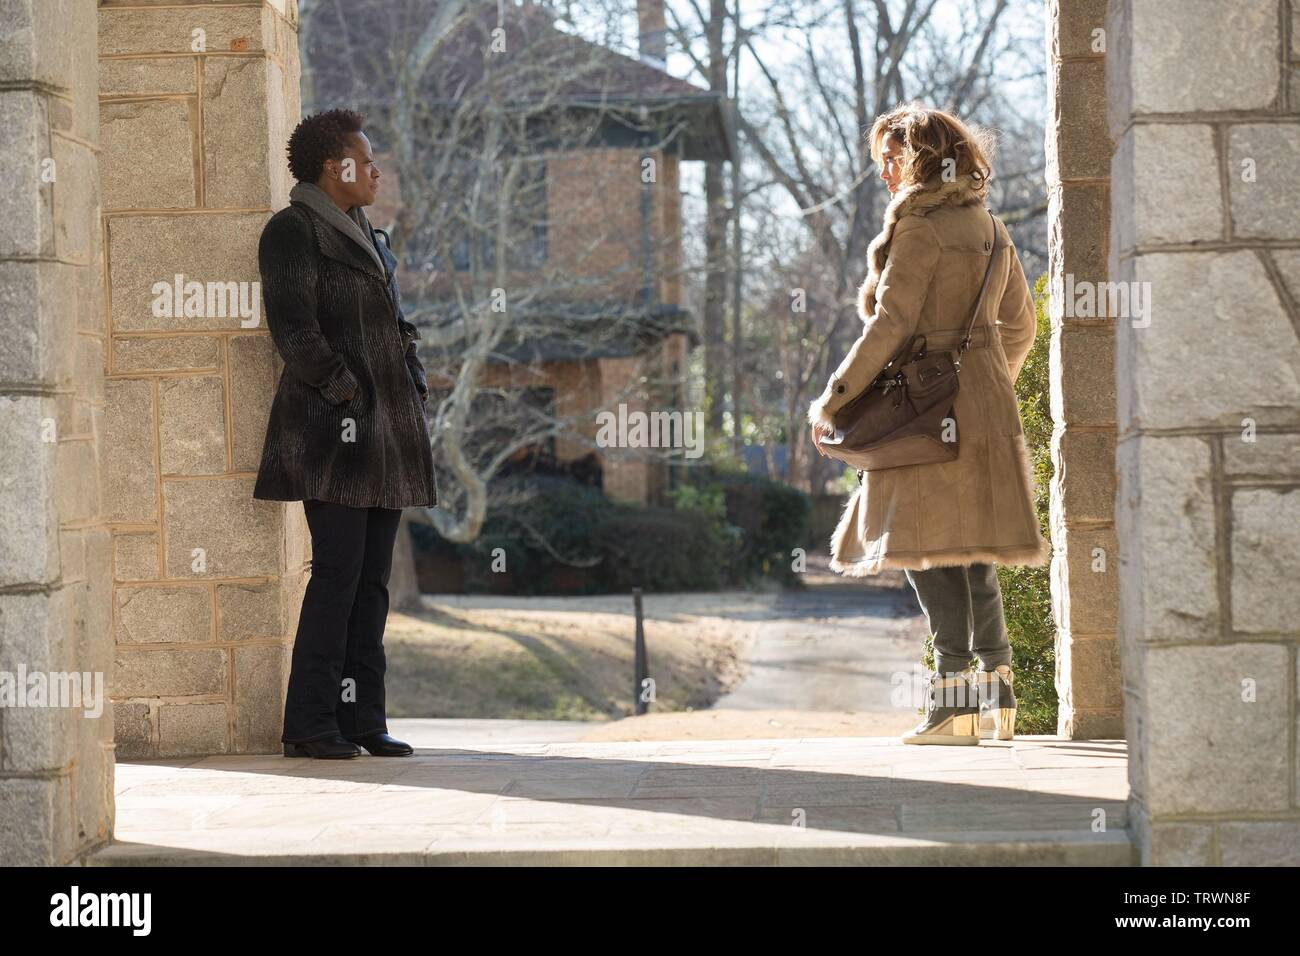 JENNIFER LOPEZ and VIOLA DAVIS in LILA & EVE (2015). Copyright: Editorial use only. No merchandising or book covers. This is a publicly distributed handout. Access rights only, no license of copyright provided. Only to be reproduced in conjunction with promotion of this film. Credit: A + E STUDIOS/JUVEE PRODUCTIONS / MAHONEY, BOB / Album - Stock Image